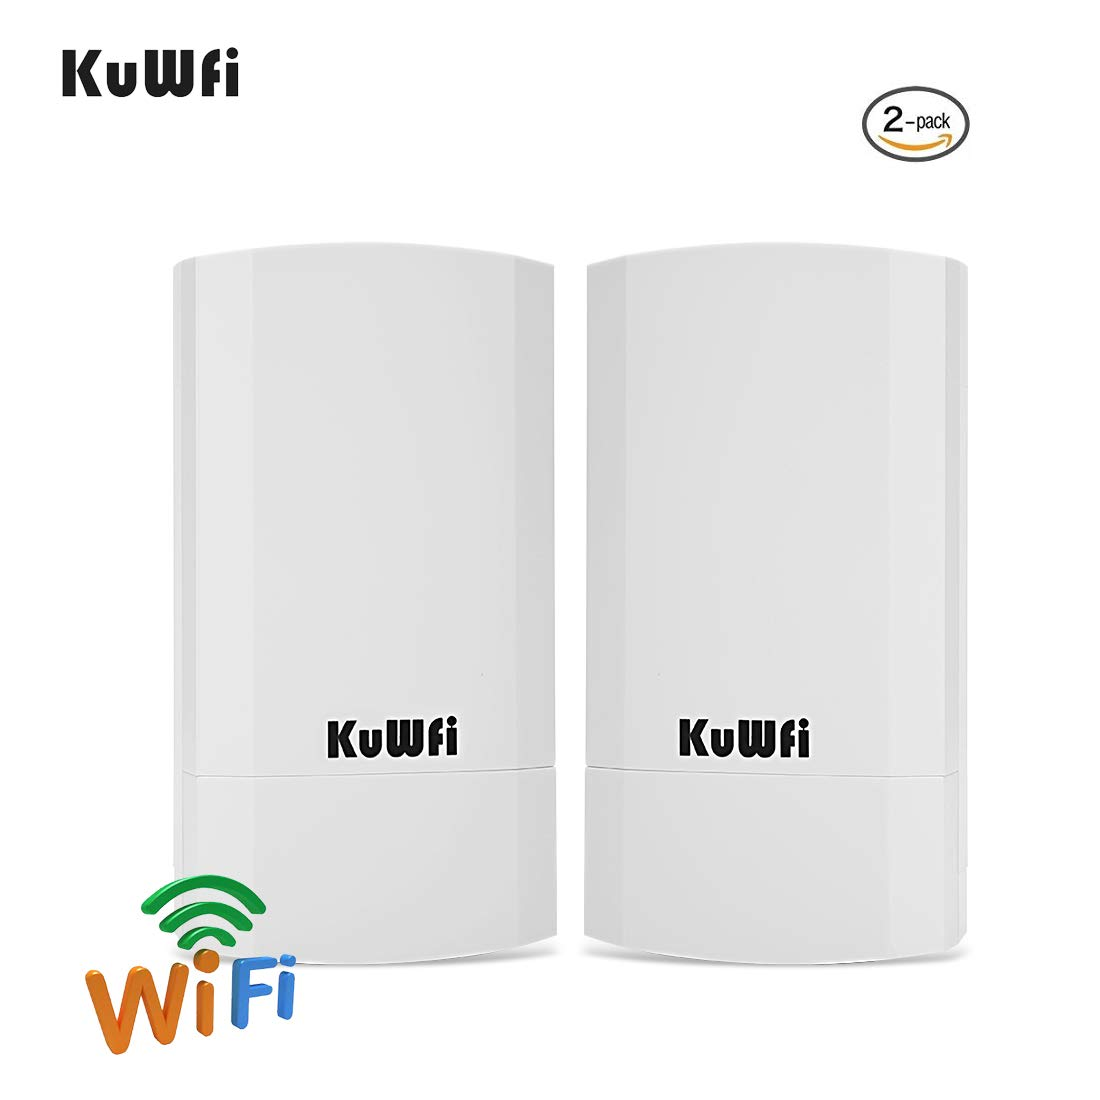 KuWFi 2-Pack 300Mbps Wireless outdoor CPE Kit,Indoor&Outdoor Point-to-Point wireless Bridge/CPE Supports 2KM transmission distance solution for PTP, PTMP (Pre-program WDS)Wireless Access Point/Bridge